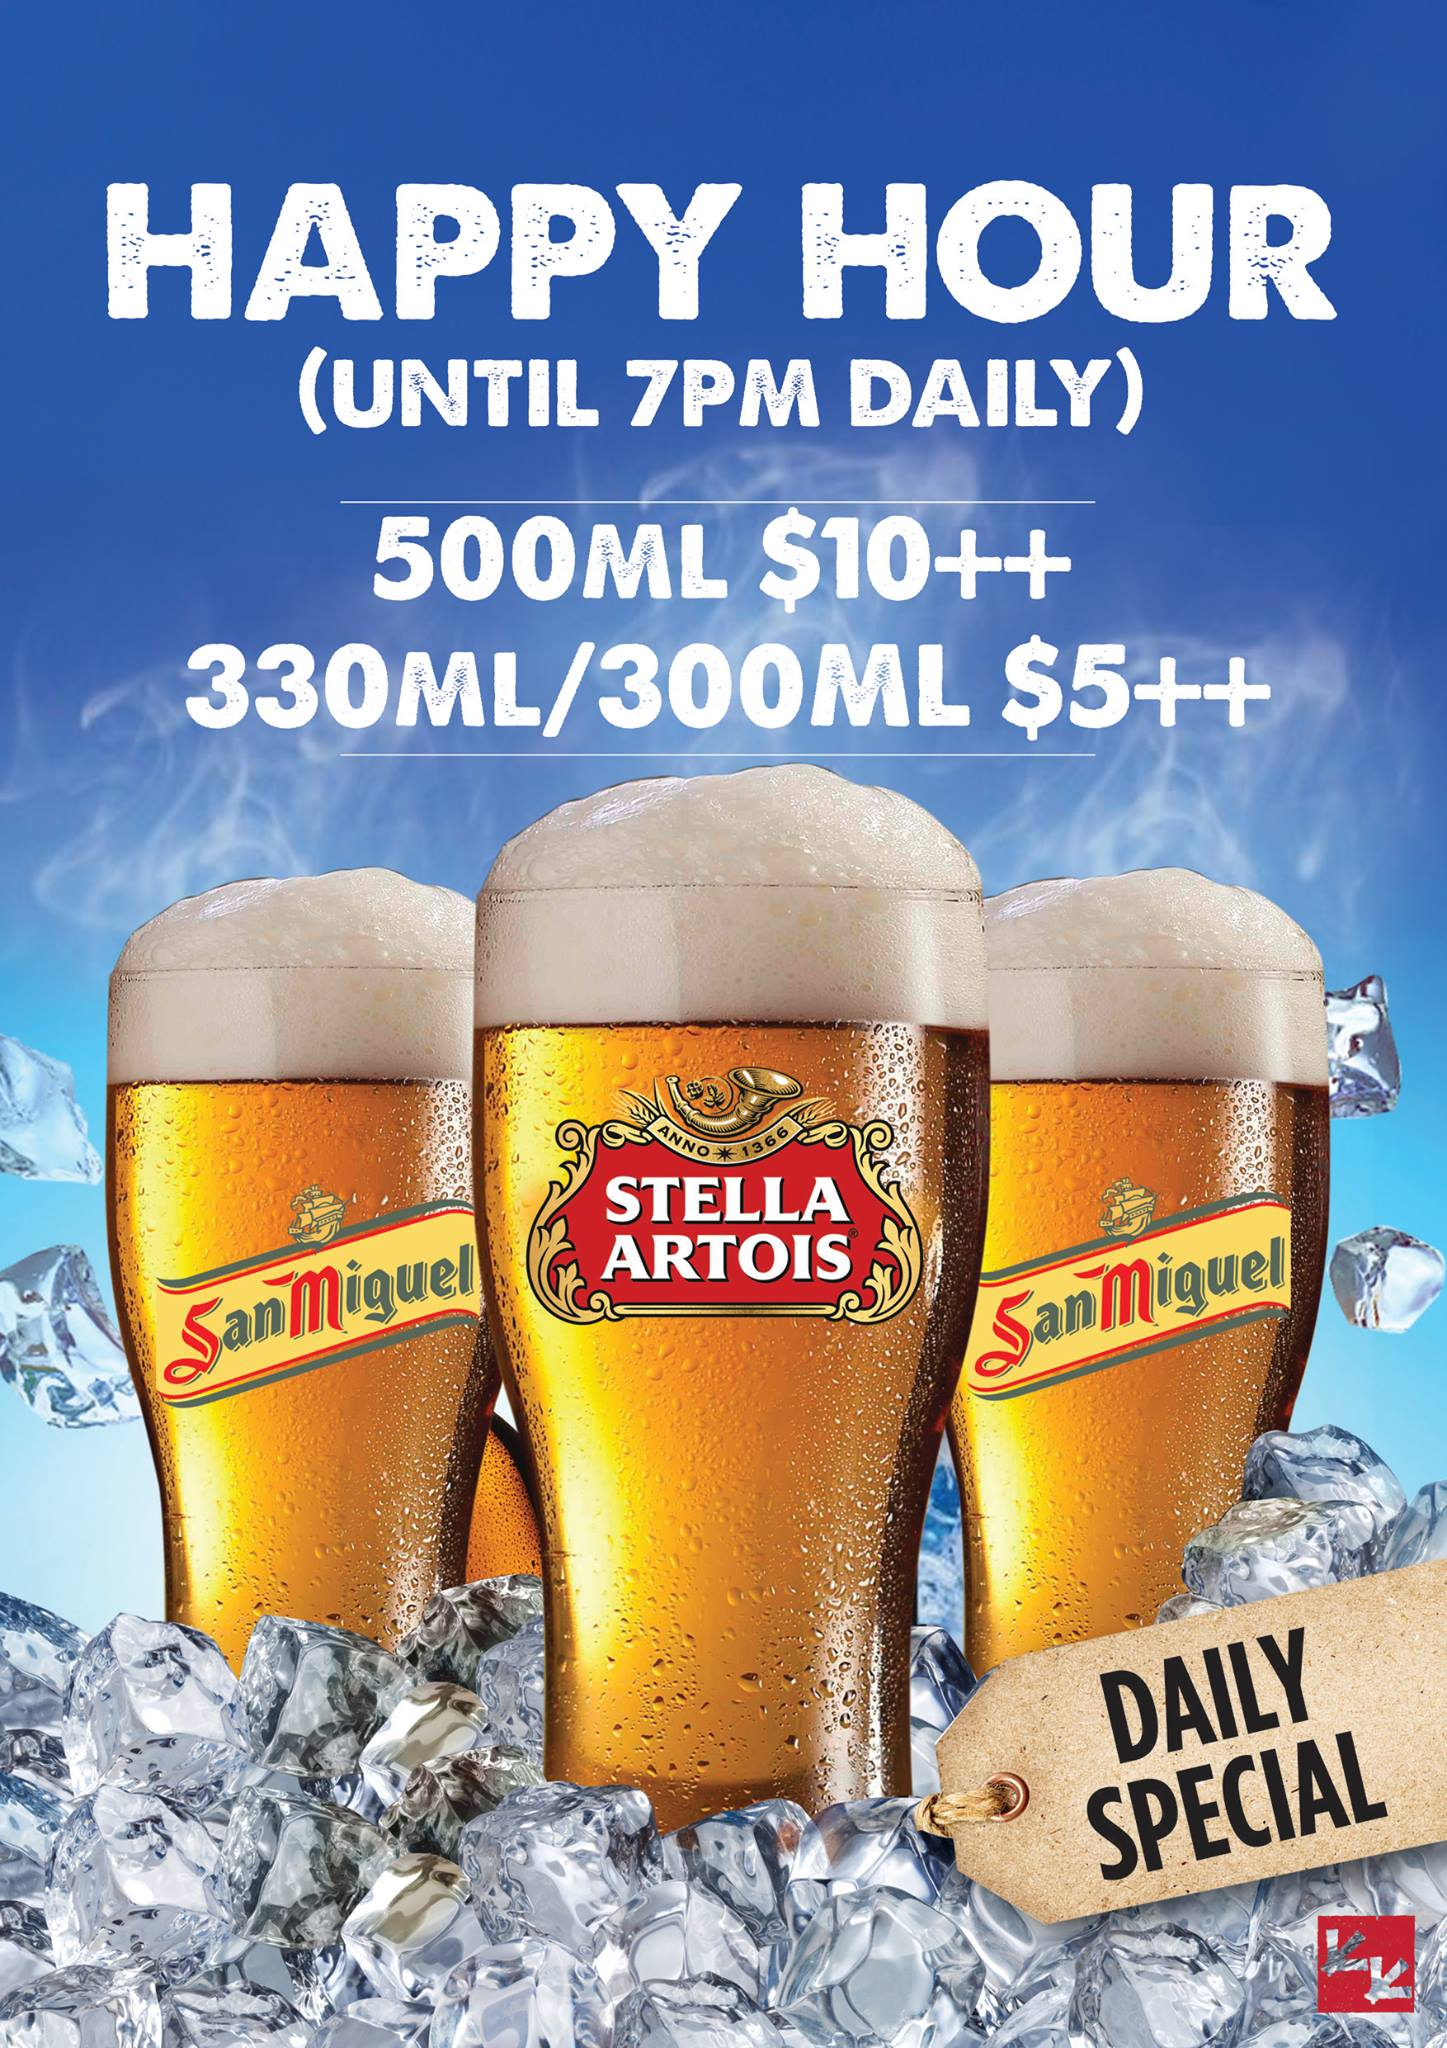 Chicken Up SG Happy Hour until 7pm Daily - Why Not Deals 1 & Promotions